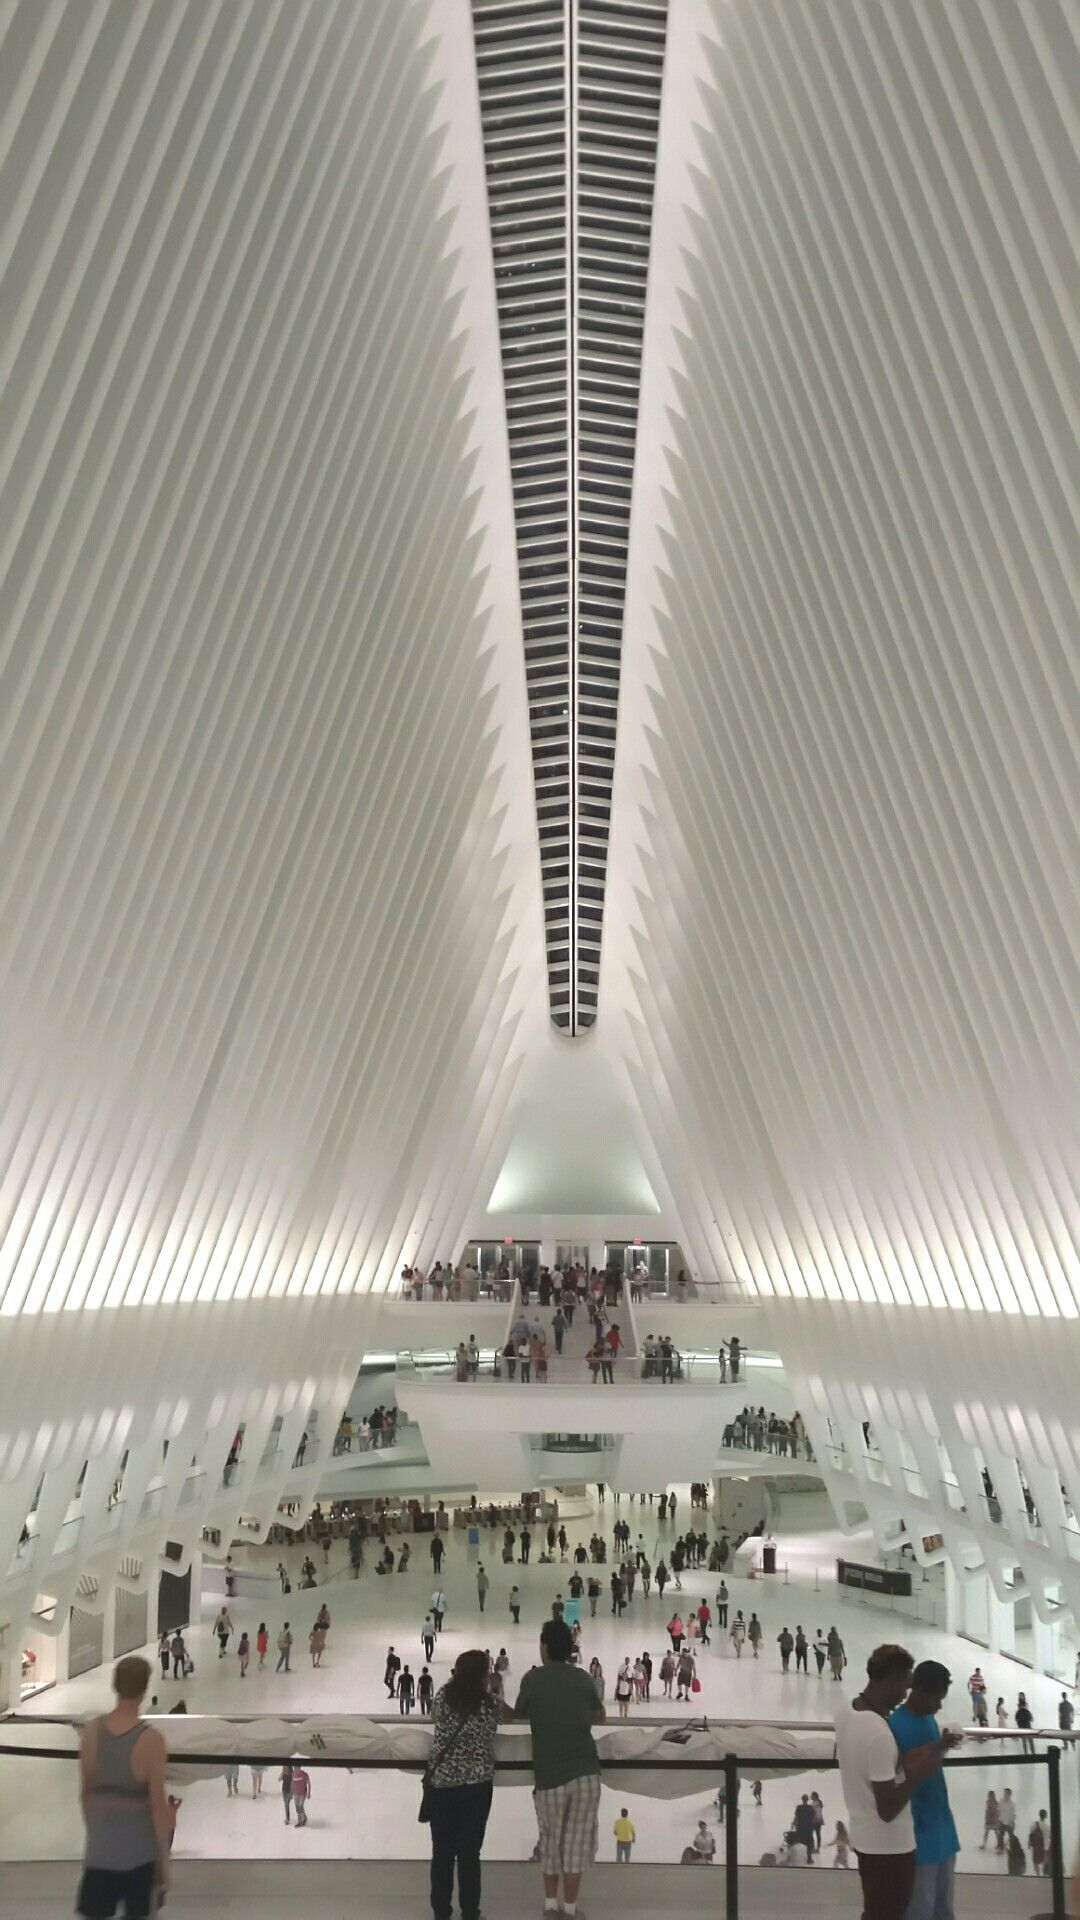 The Oculus At Wtc Is A Train Station Hub And Westfield Mall In